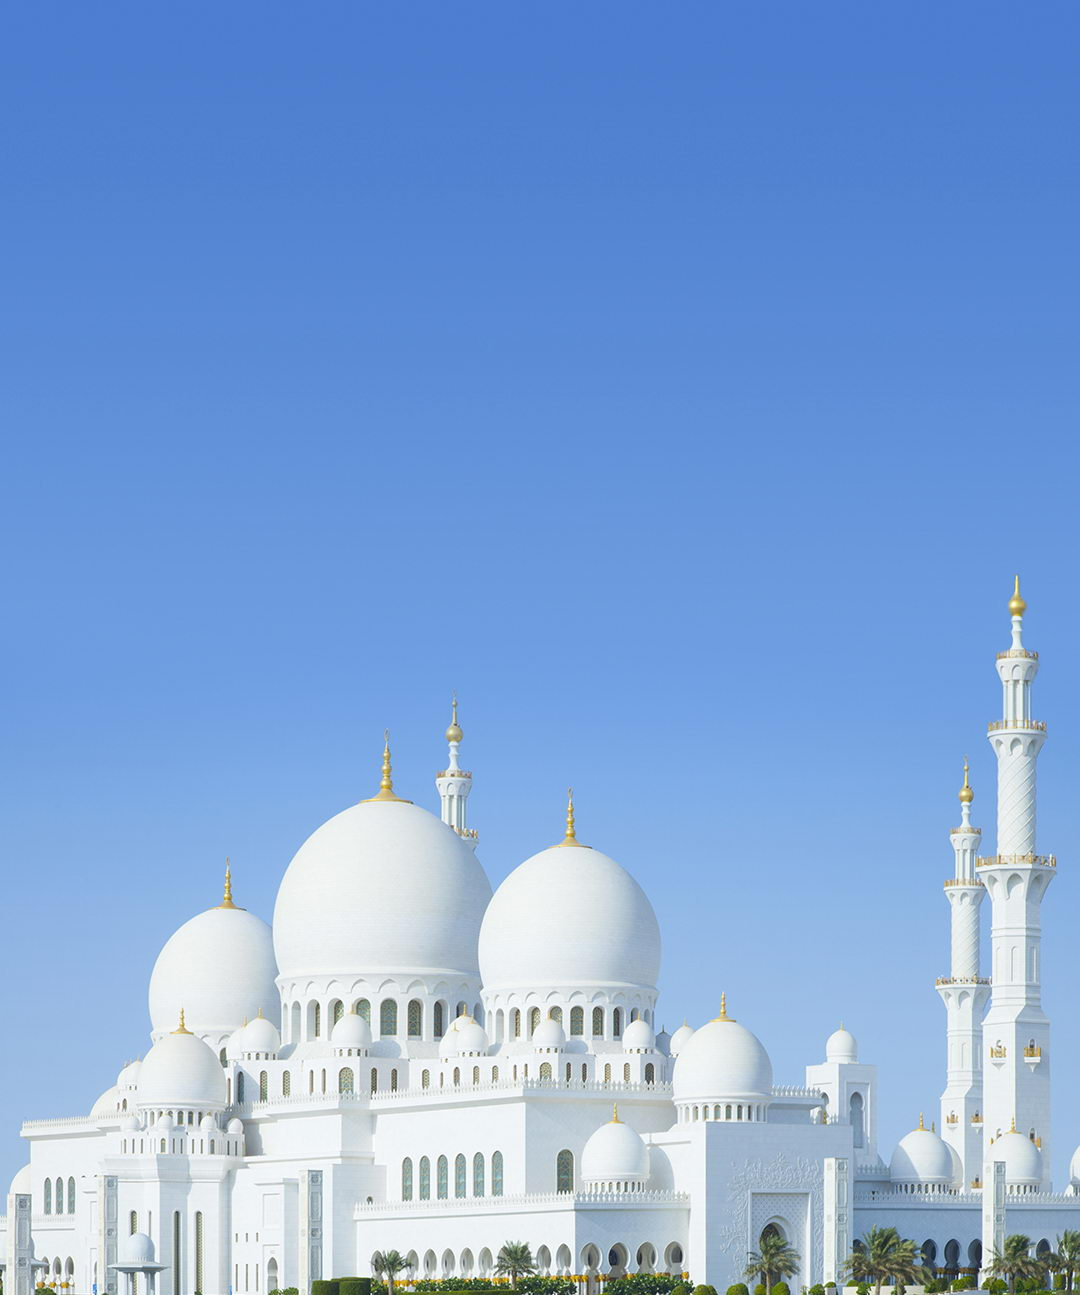 Smart mosque save energy with our TIS smart technology